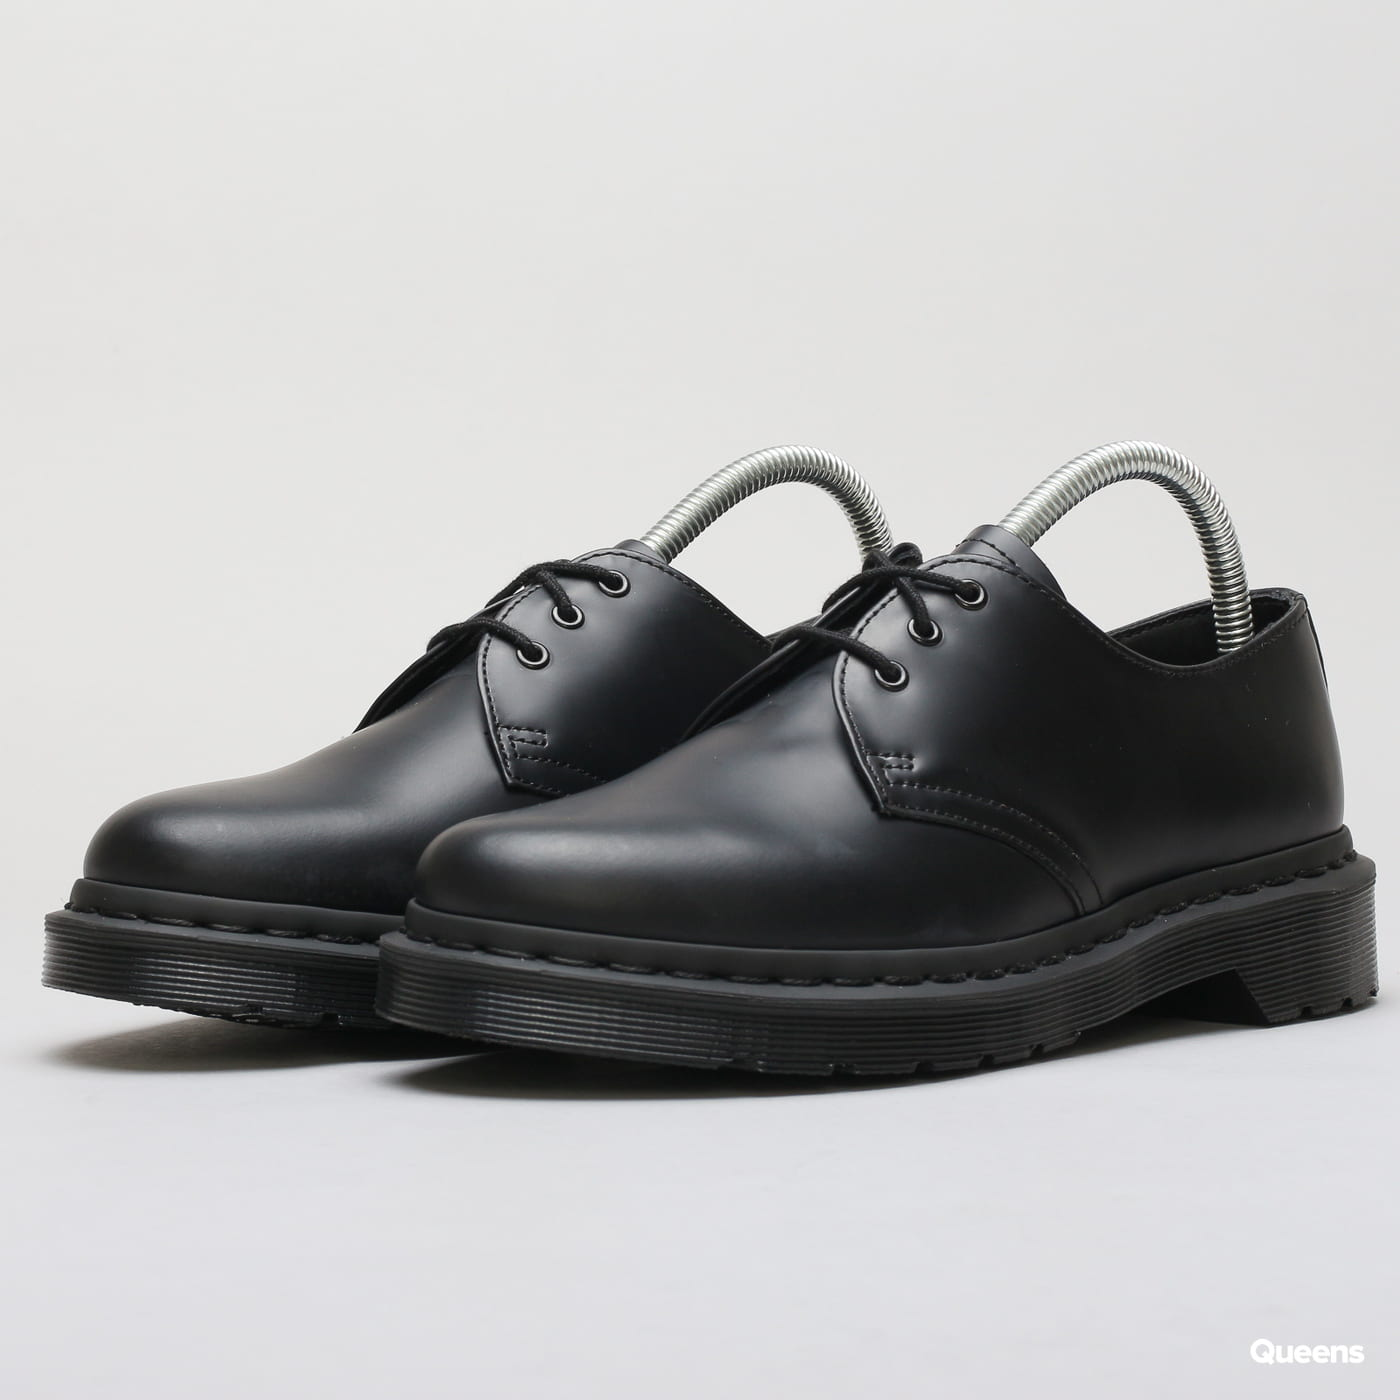 Dr. Martens 1461 Mono black smooth